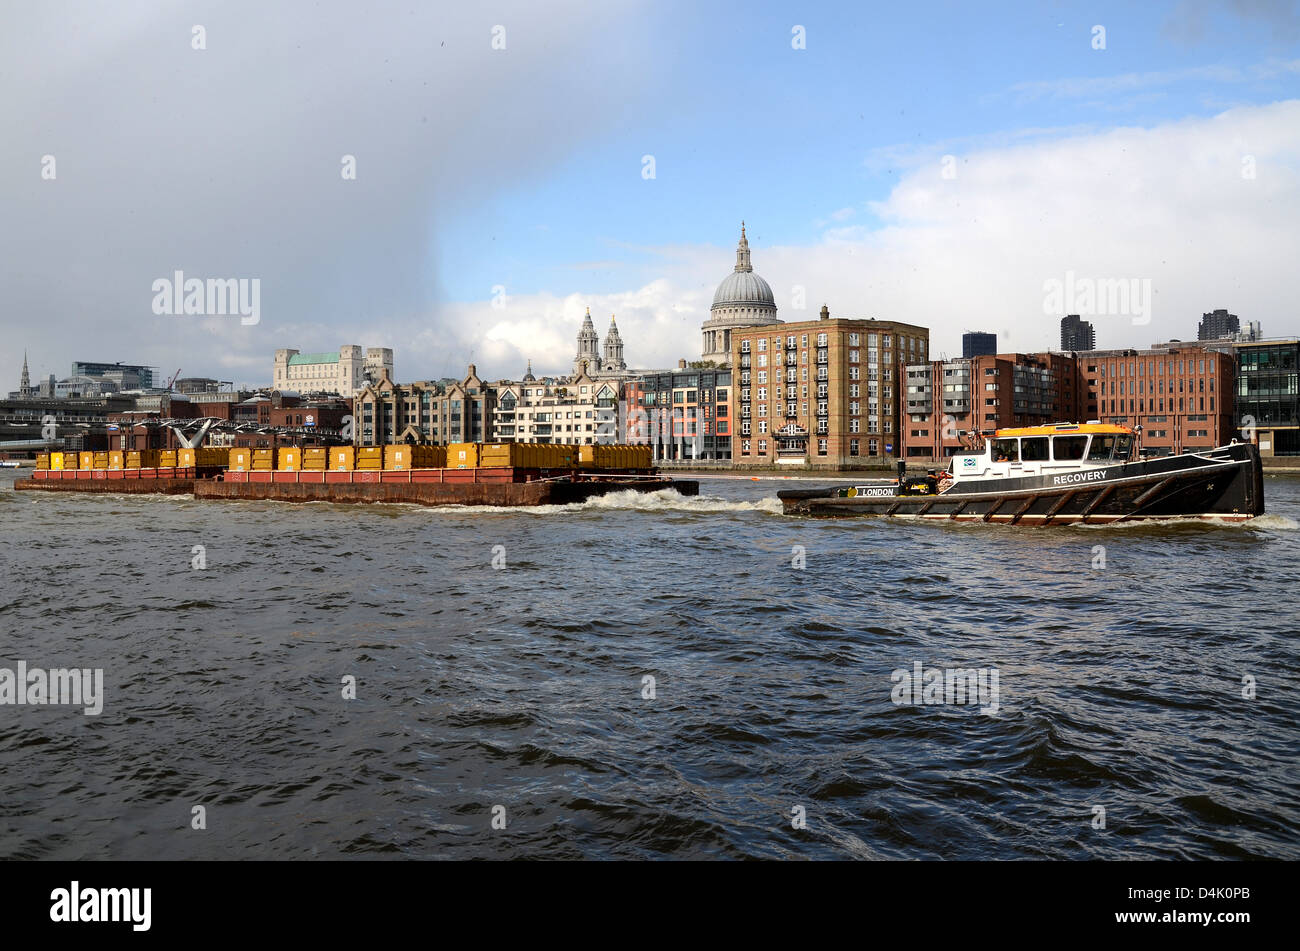 cory-environmental-tug-recovery-pulls-a-barge-on-the-river-thames-D4K0PB.jpg